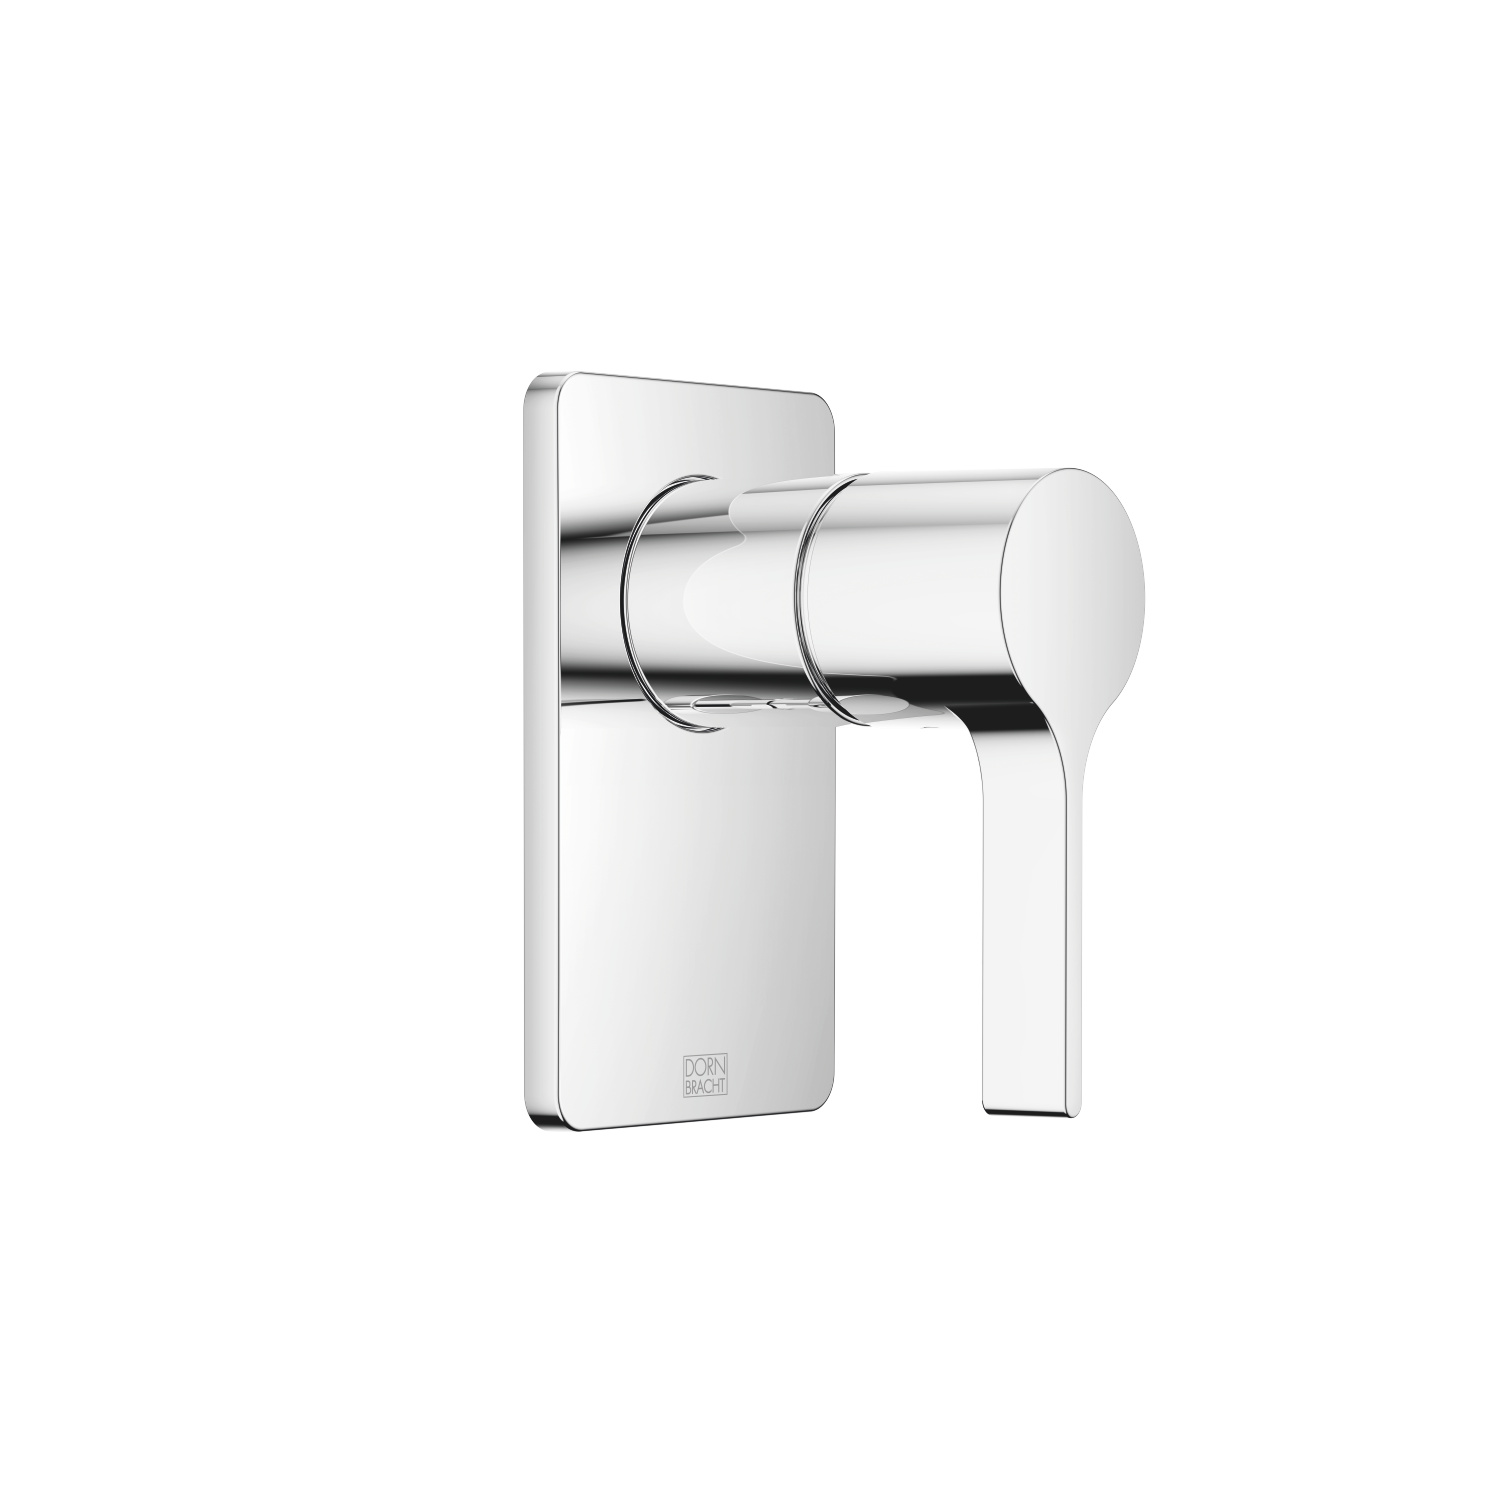 Concealed single-lever mixer without diverter - polished chrome